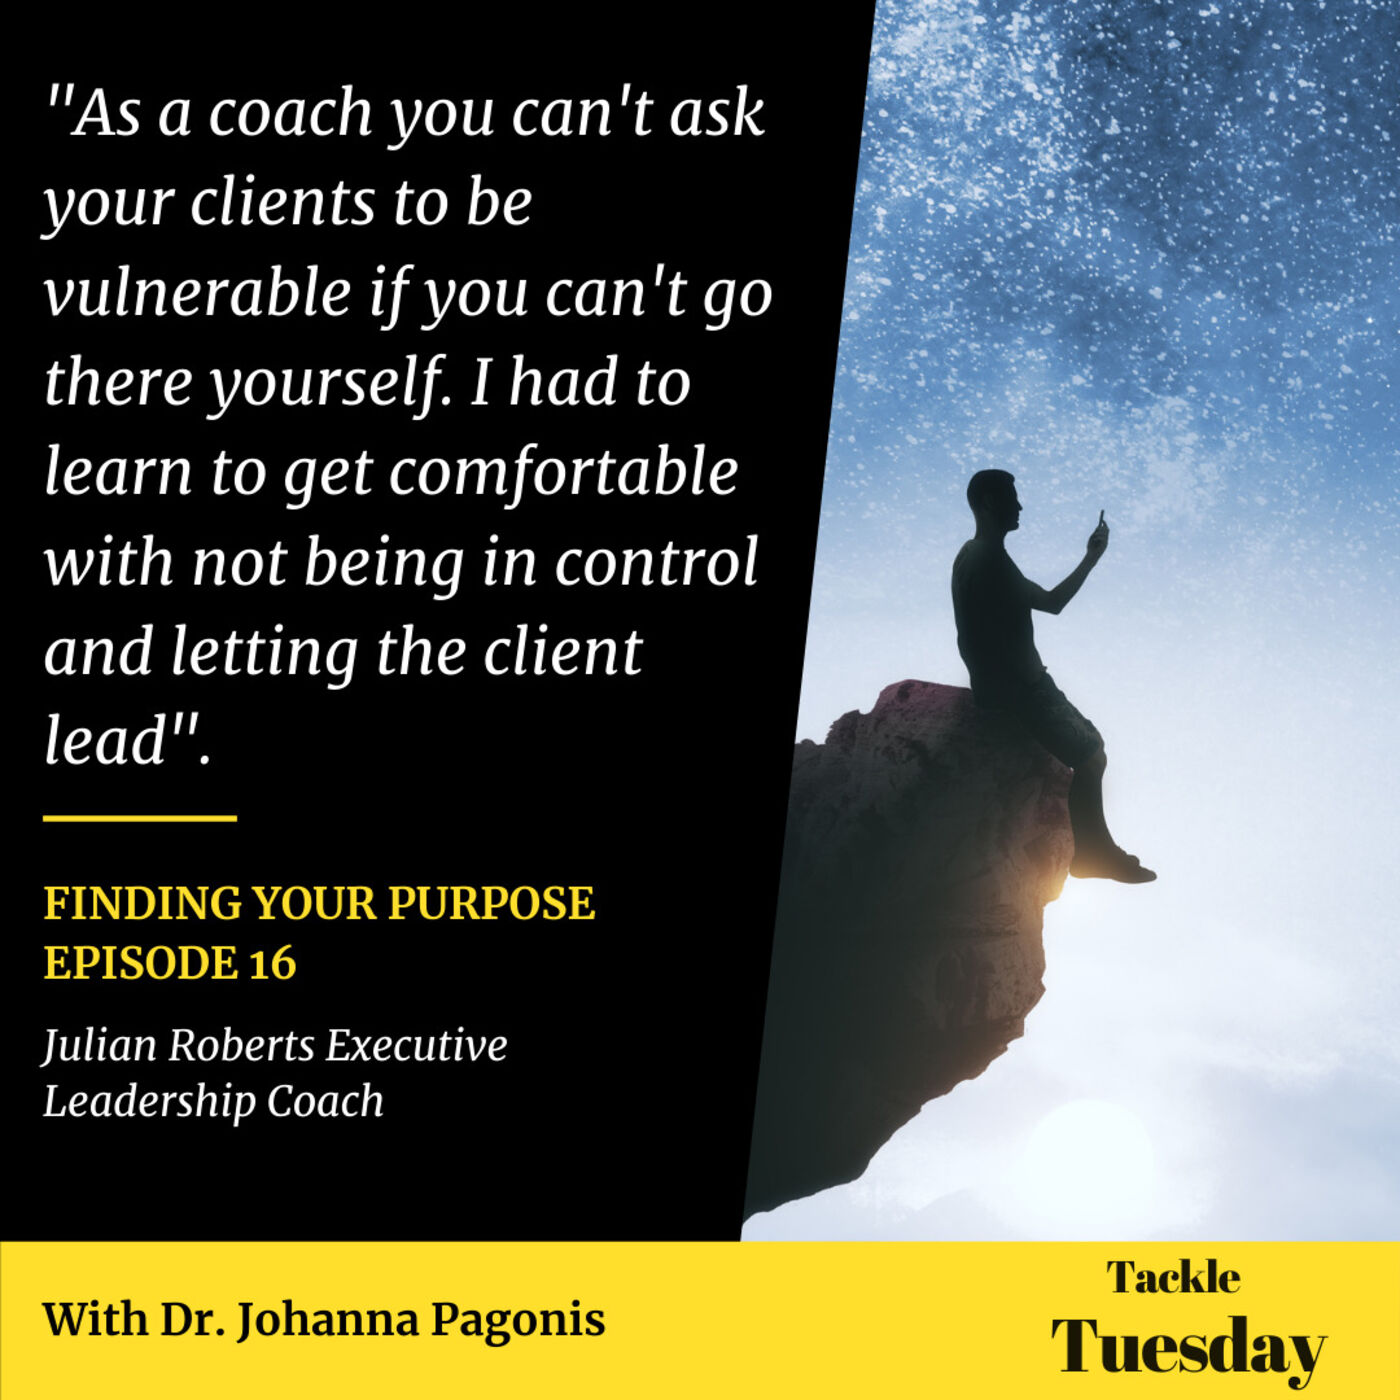 Ep. 16 Finding Your Purpose